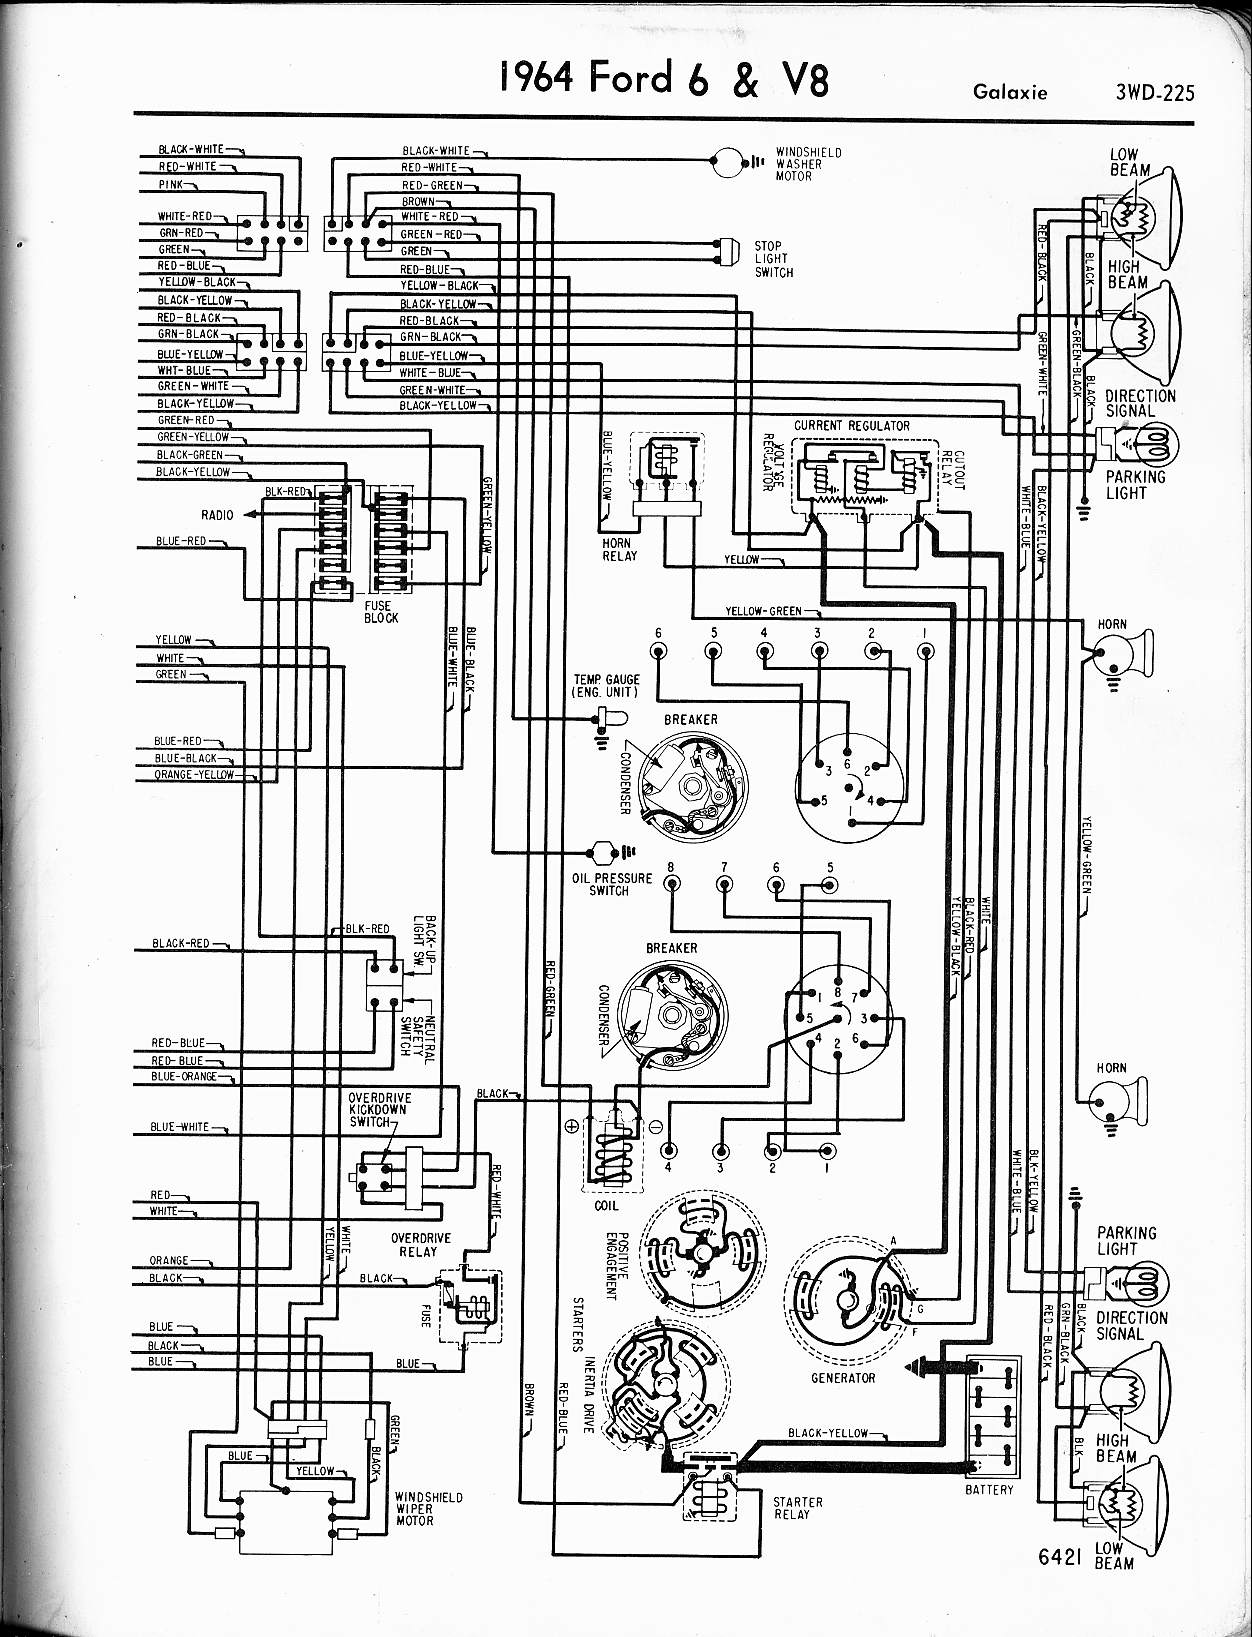 MWire5765 225 57 65 ford wiring diagrams Ford E 350 Wiring Diagrams at fashall.co